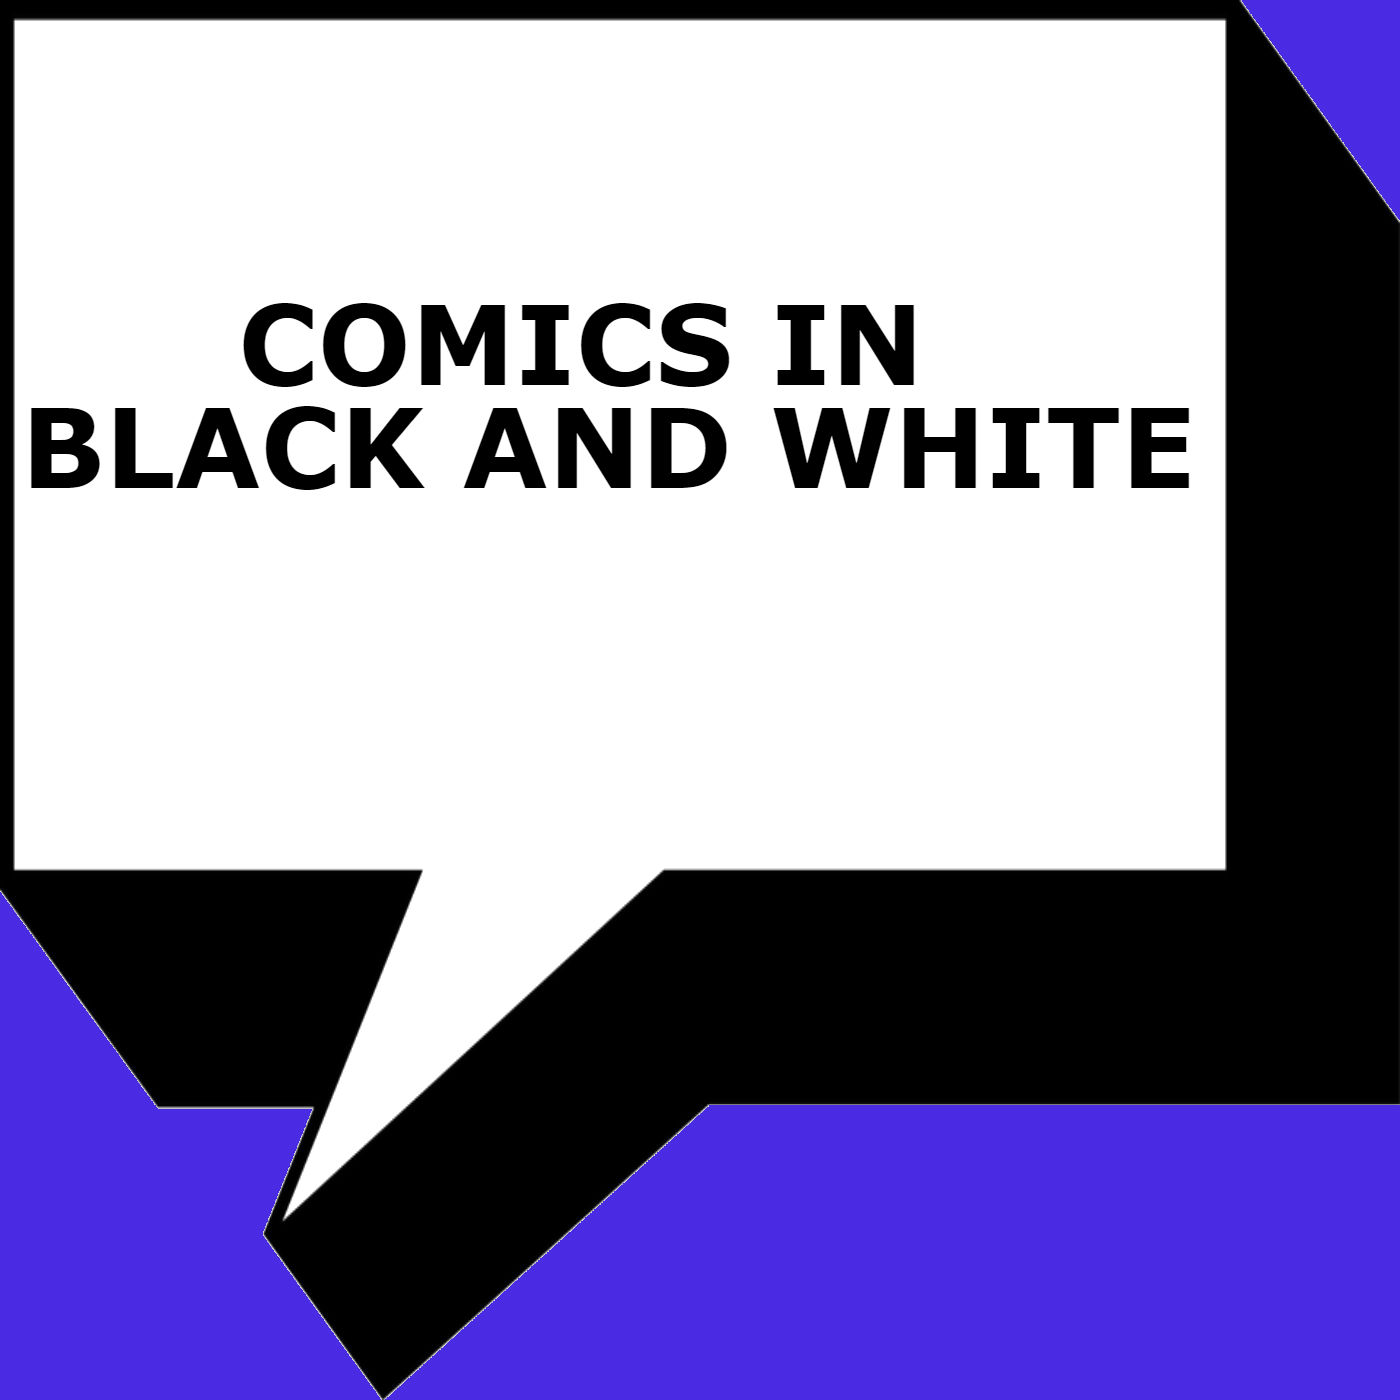 "<p><span style=""color: #5a5a5a; font-family: 'Helvetica Neue', Helvetica, Arial, sans-serif;"">A monthly podcast hosted by Paul Tesseneer and Martin Ferretti discussing some of our favorite black and white comics and their impact on the comic book world.</span></p>"